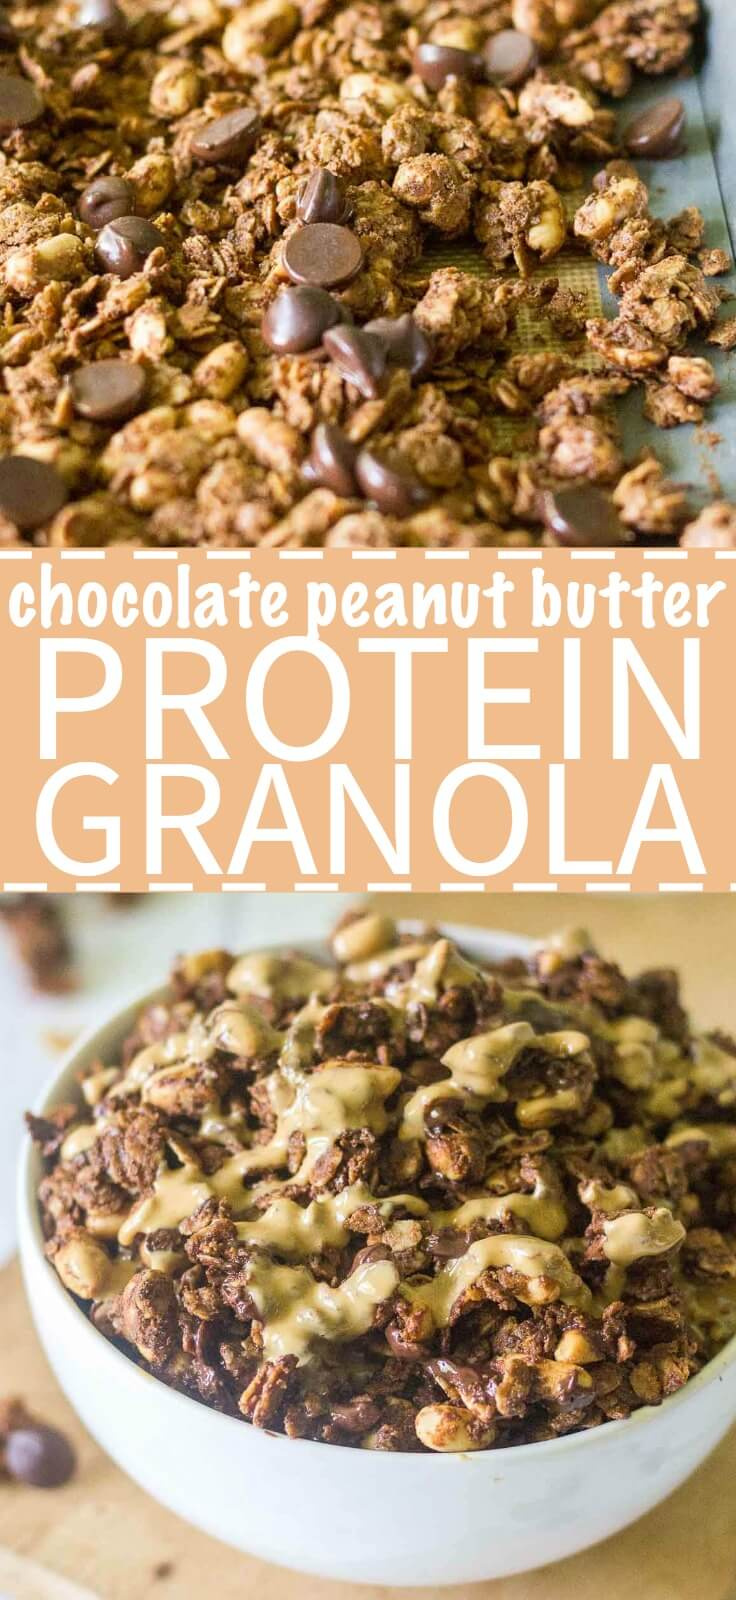 This Chocolate Peanut Butter Protein Granola is crunchy, flavorful and packed with healthy ingredients. It's a delicious way to start the day! The perfect breakfast recipe or snack recipe, this easy granola comes together in minutes and tastes so good.